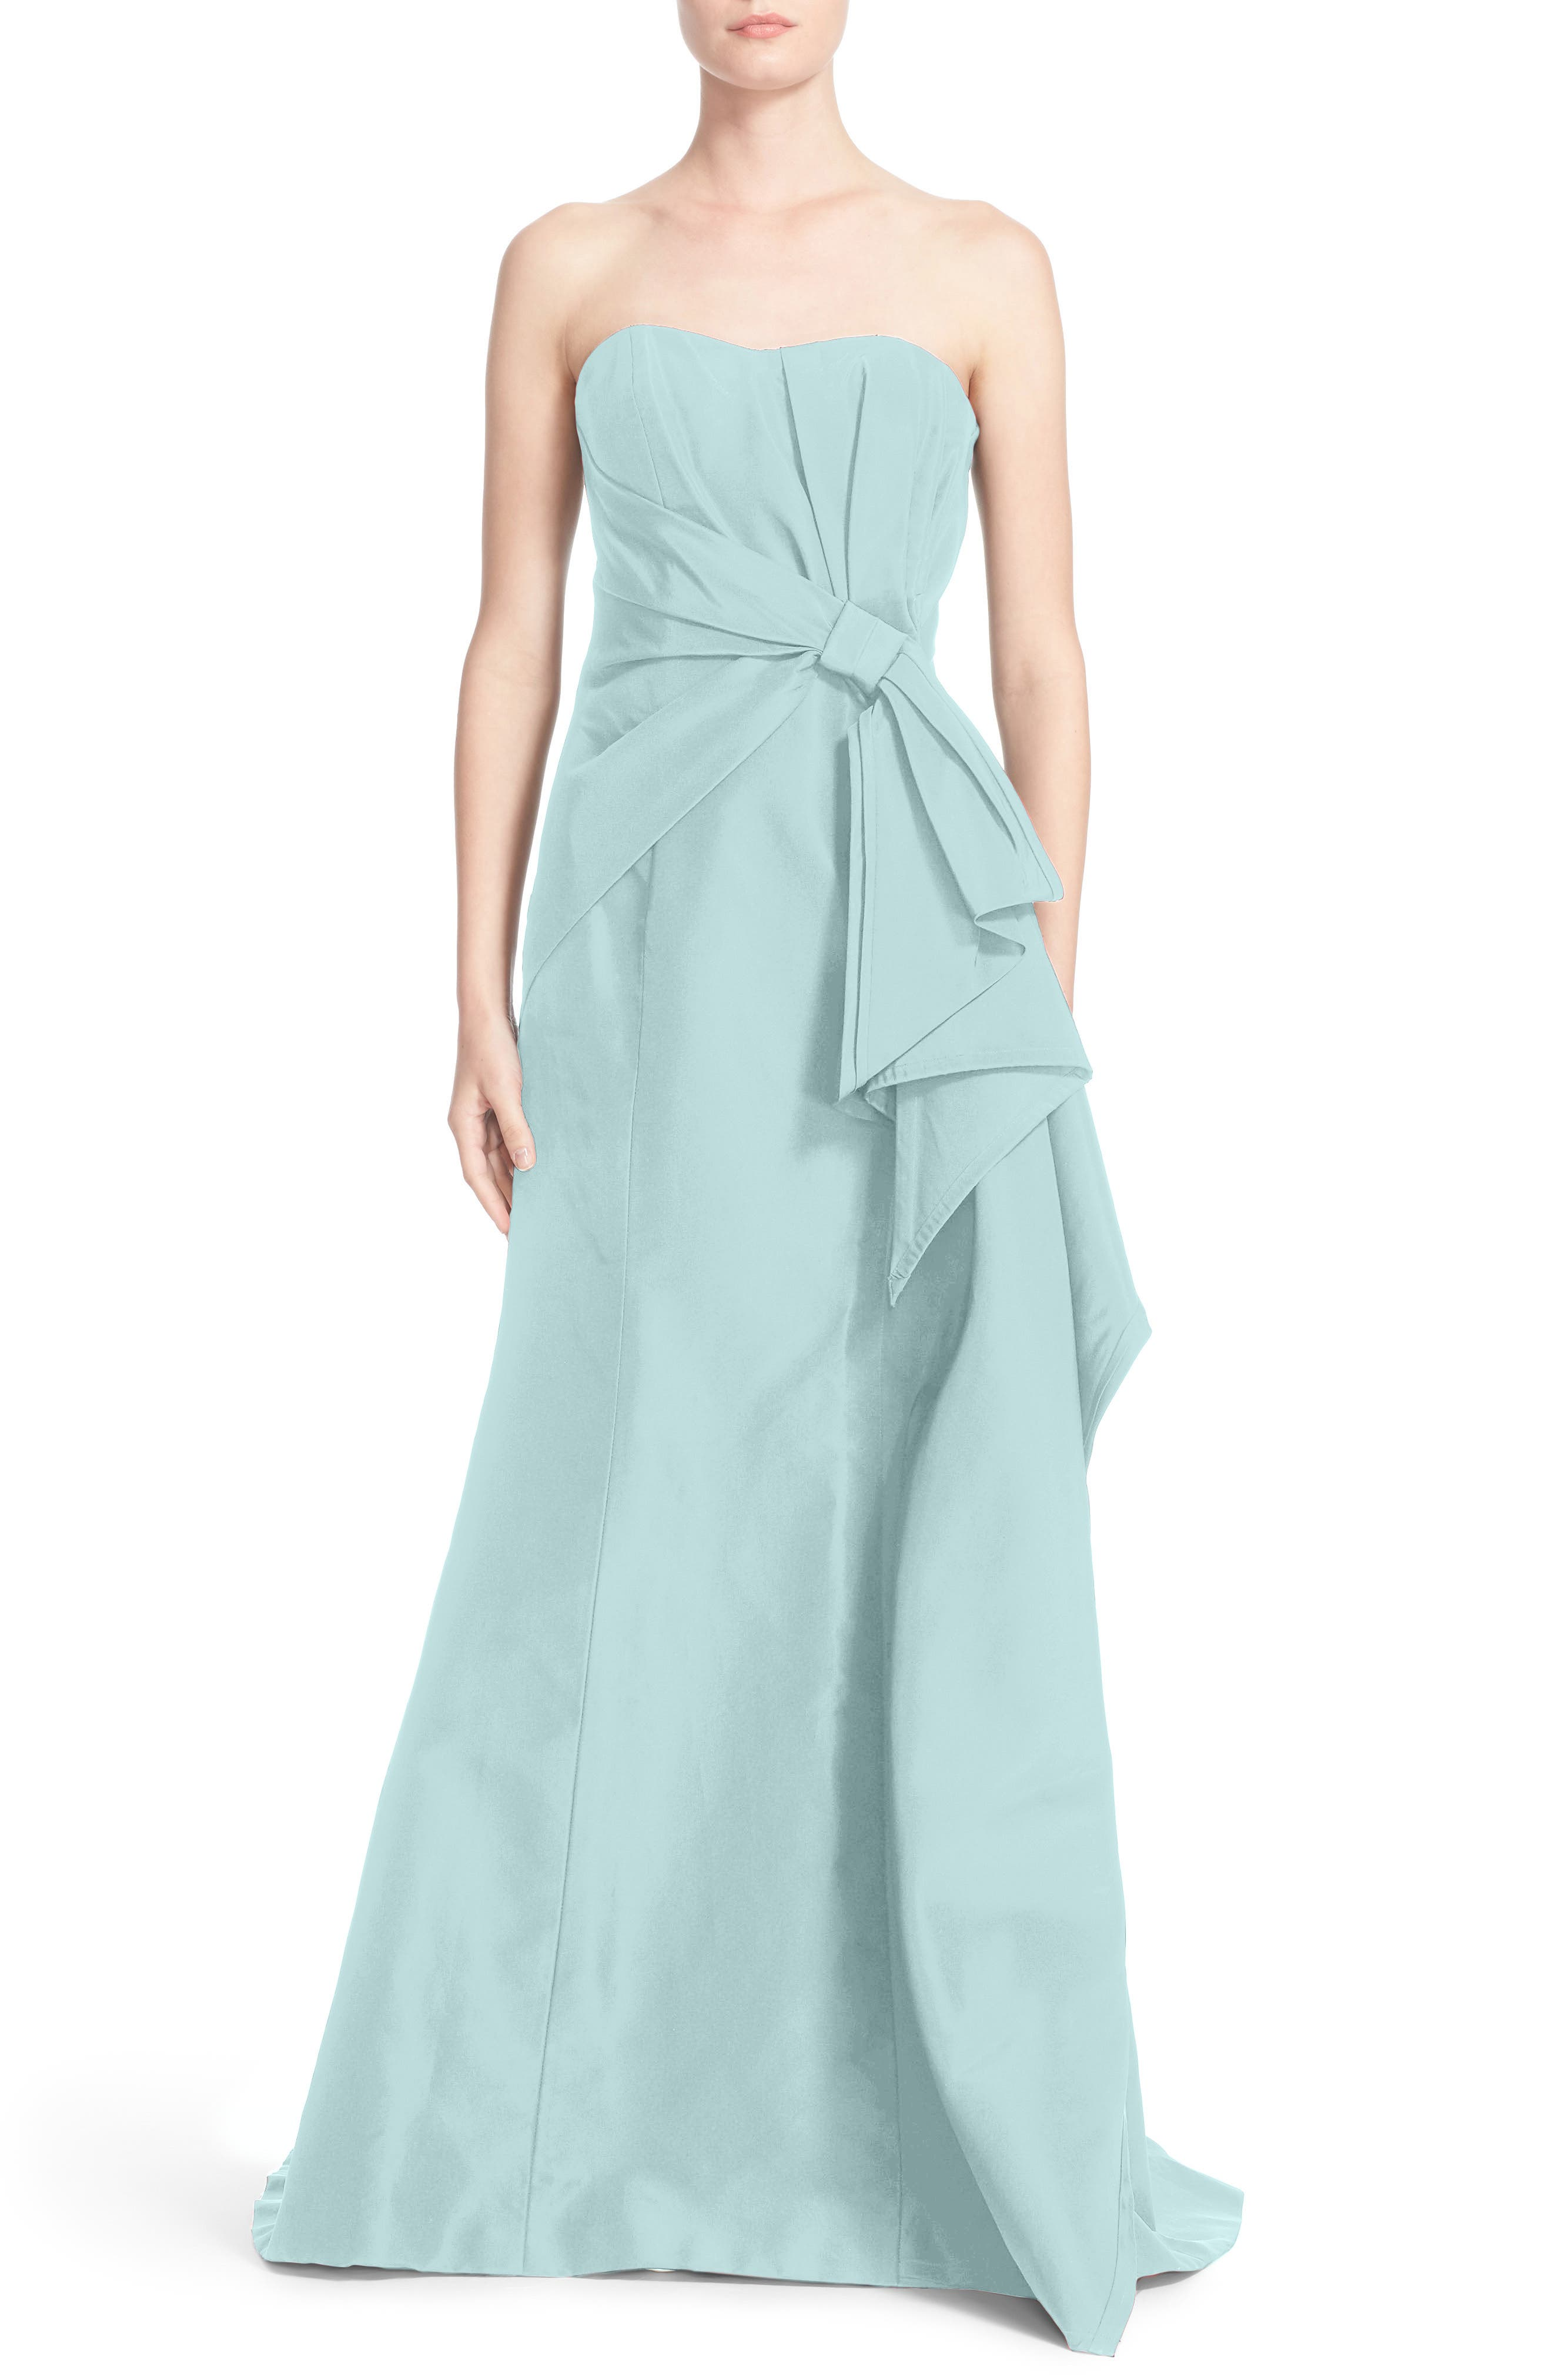 Main Image - Carolina Herrera Bow Detail Strapless Silk Faille Gown